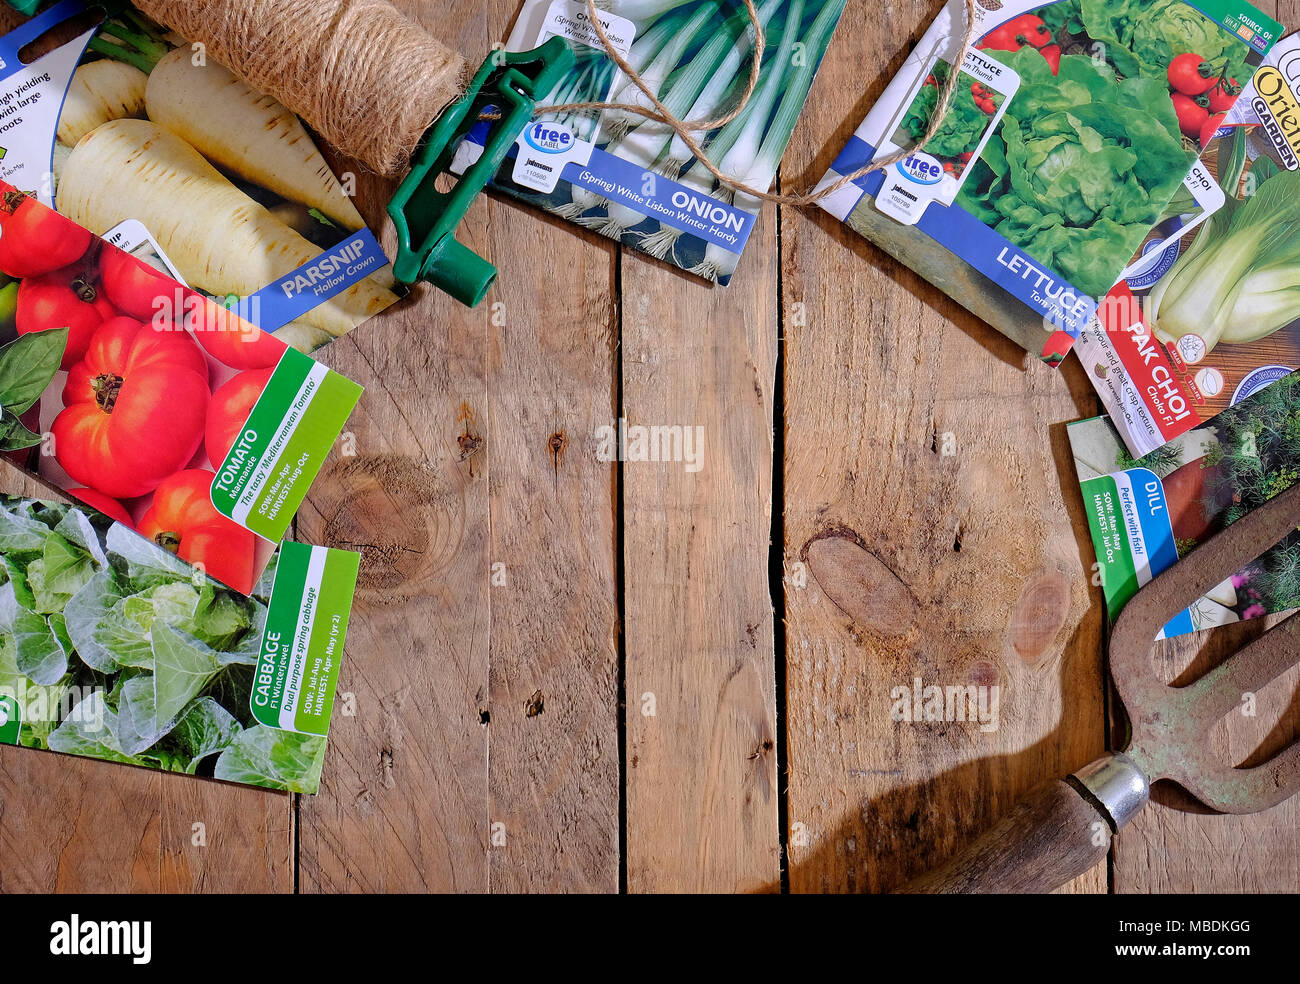 Vegetable Seed Packets Stock Photos & Vegetable Seed Packets Stock ...